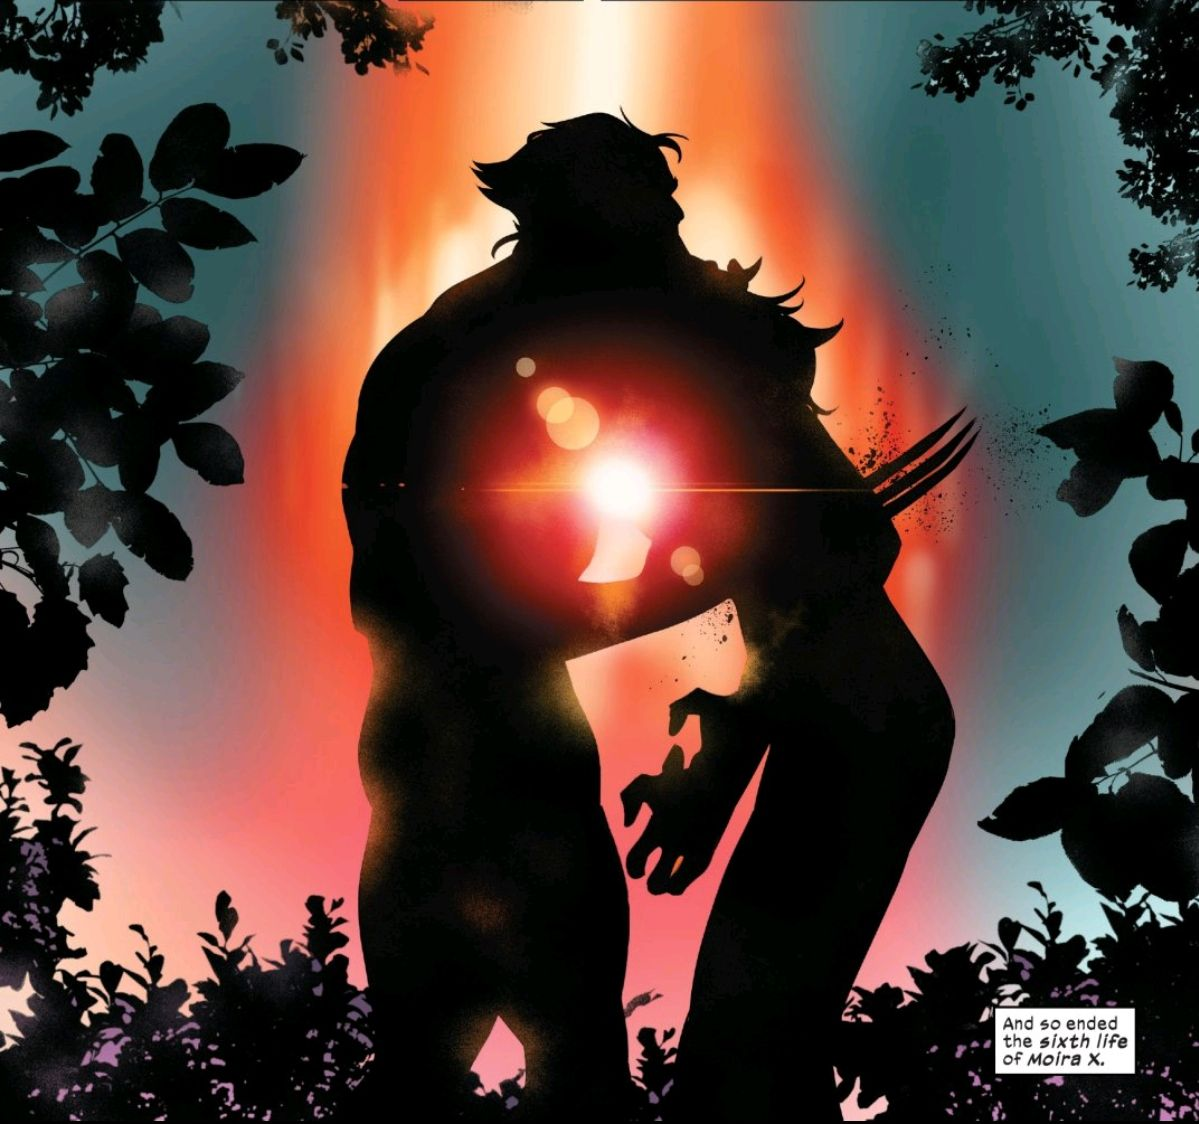 Wolverine consensually executes Moira VI, one thousand years into the future, in Powers of X #6, Marvel Comics (2019).